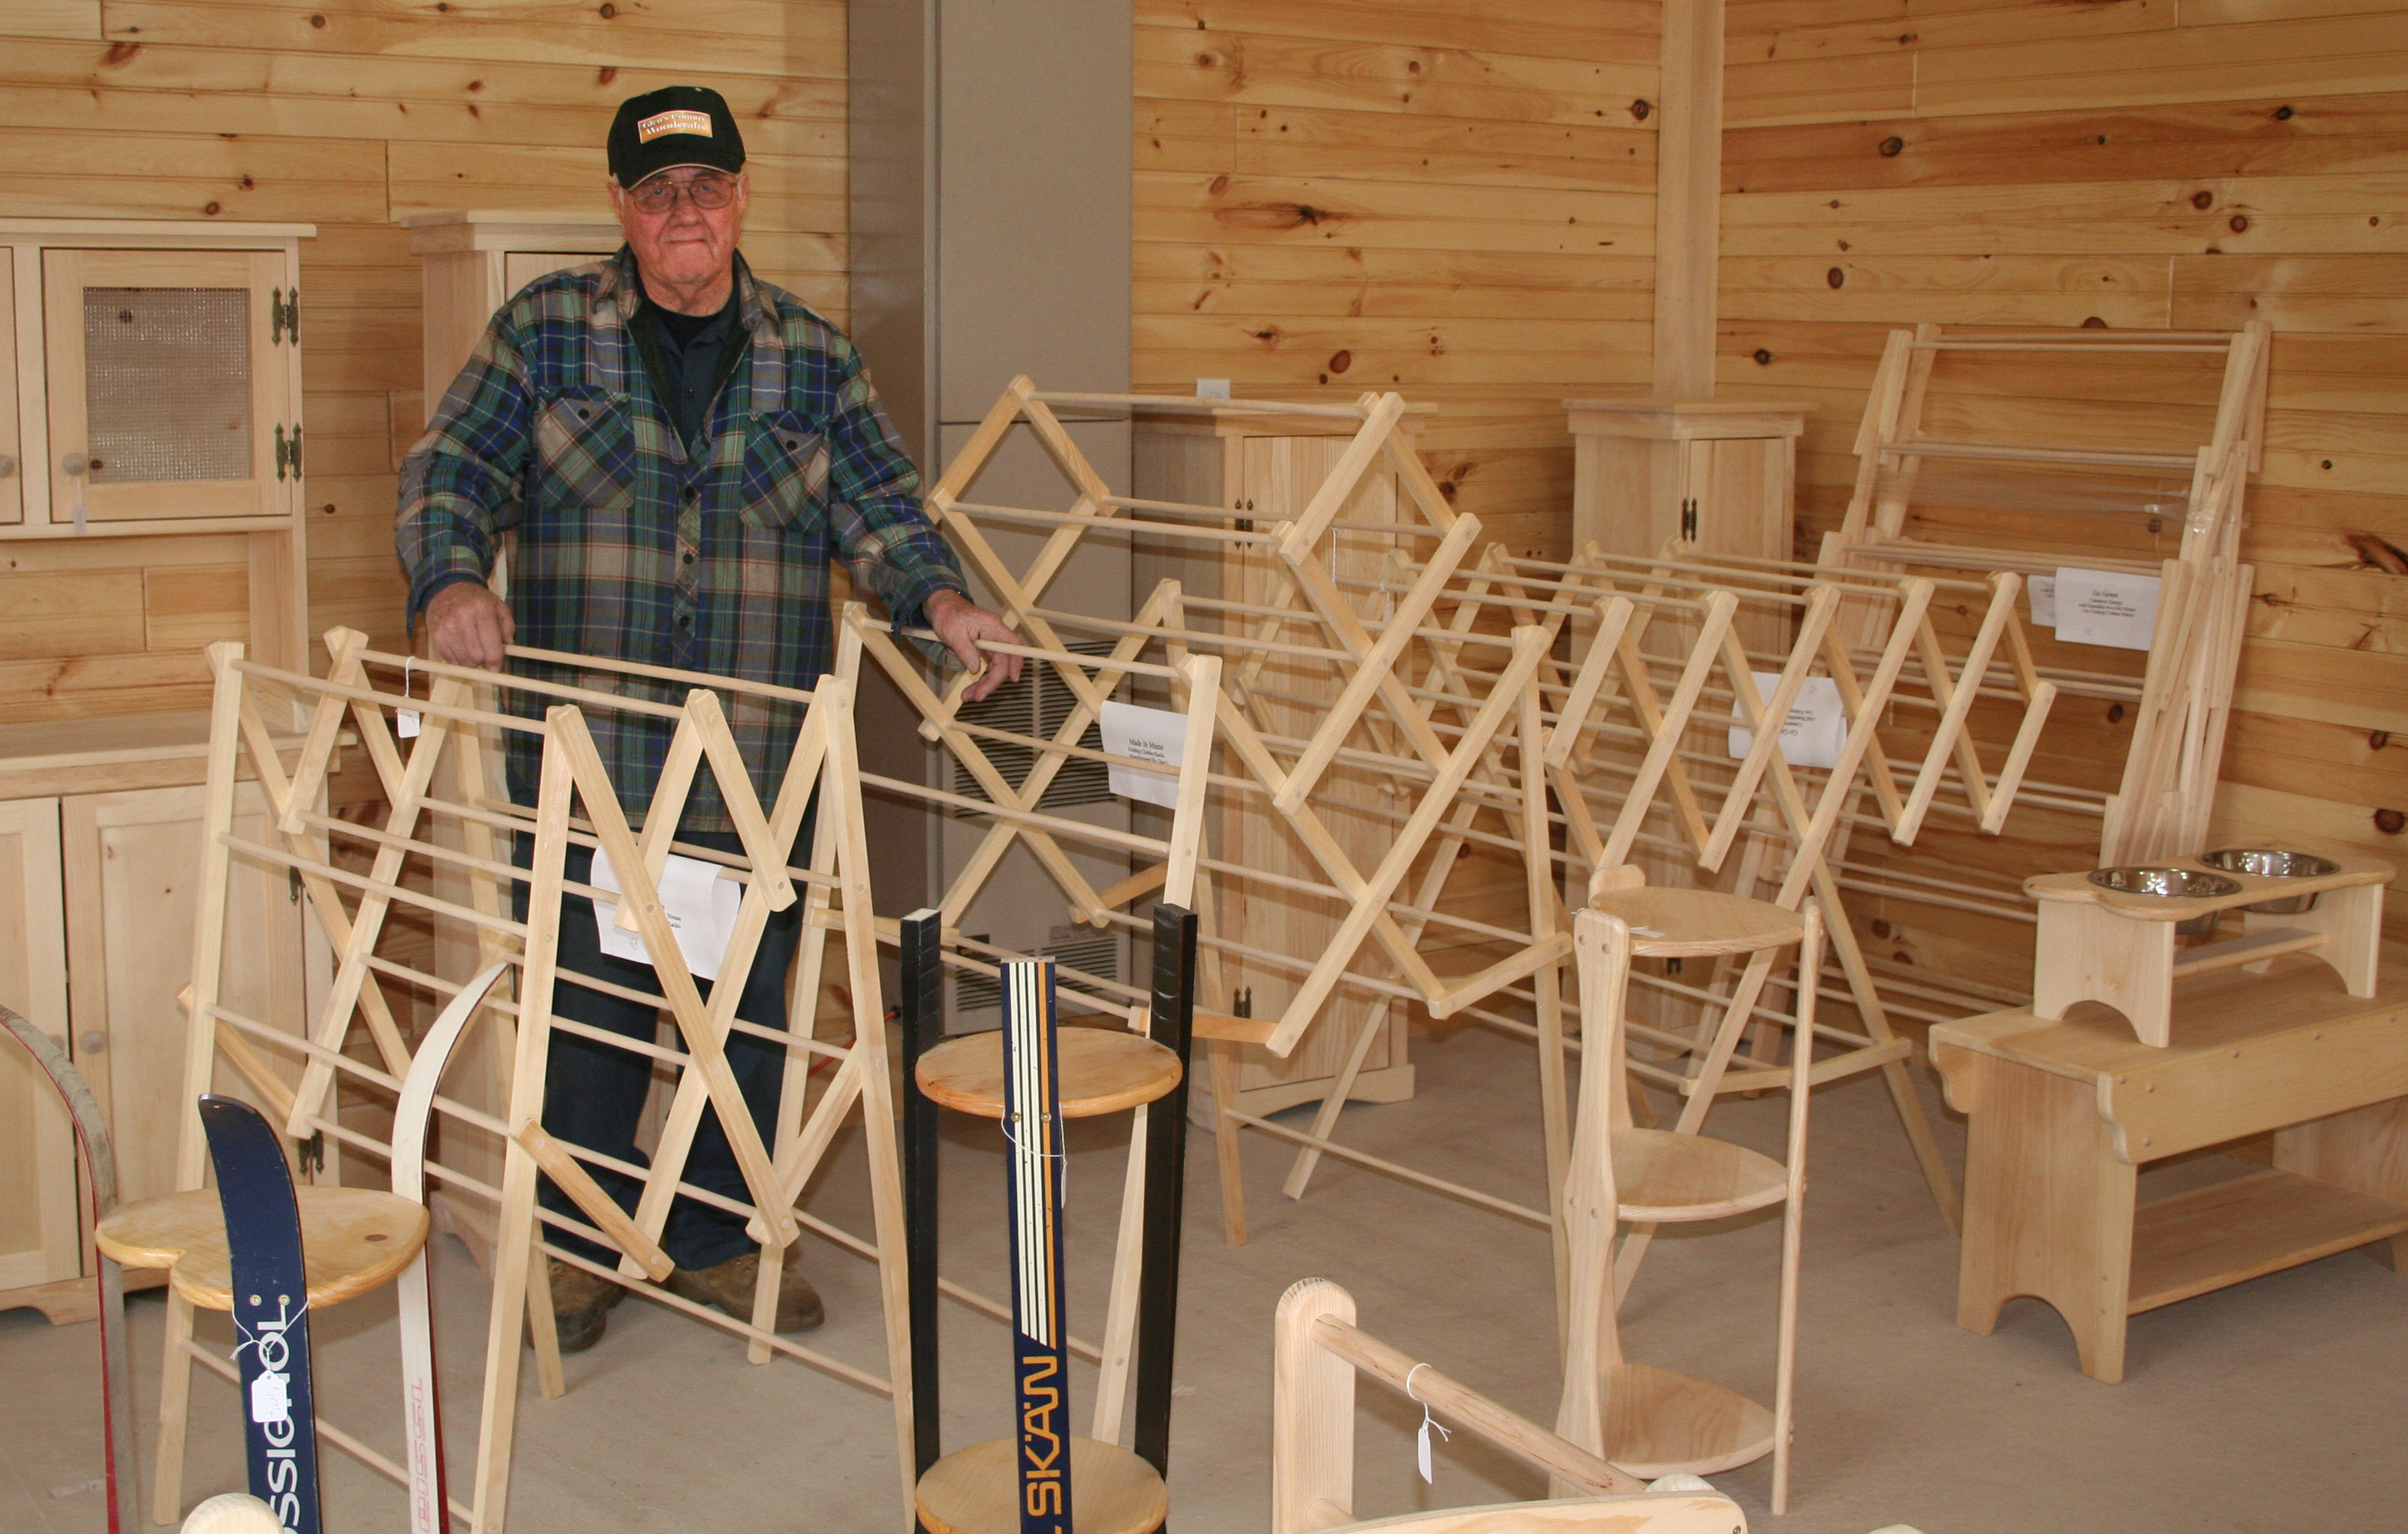 Build Plans Wooden Rack For Drying Clothes Wooden Plans For Wooden